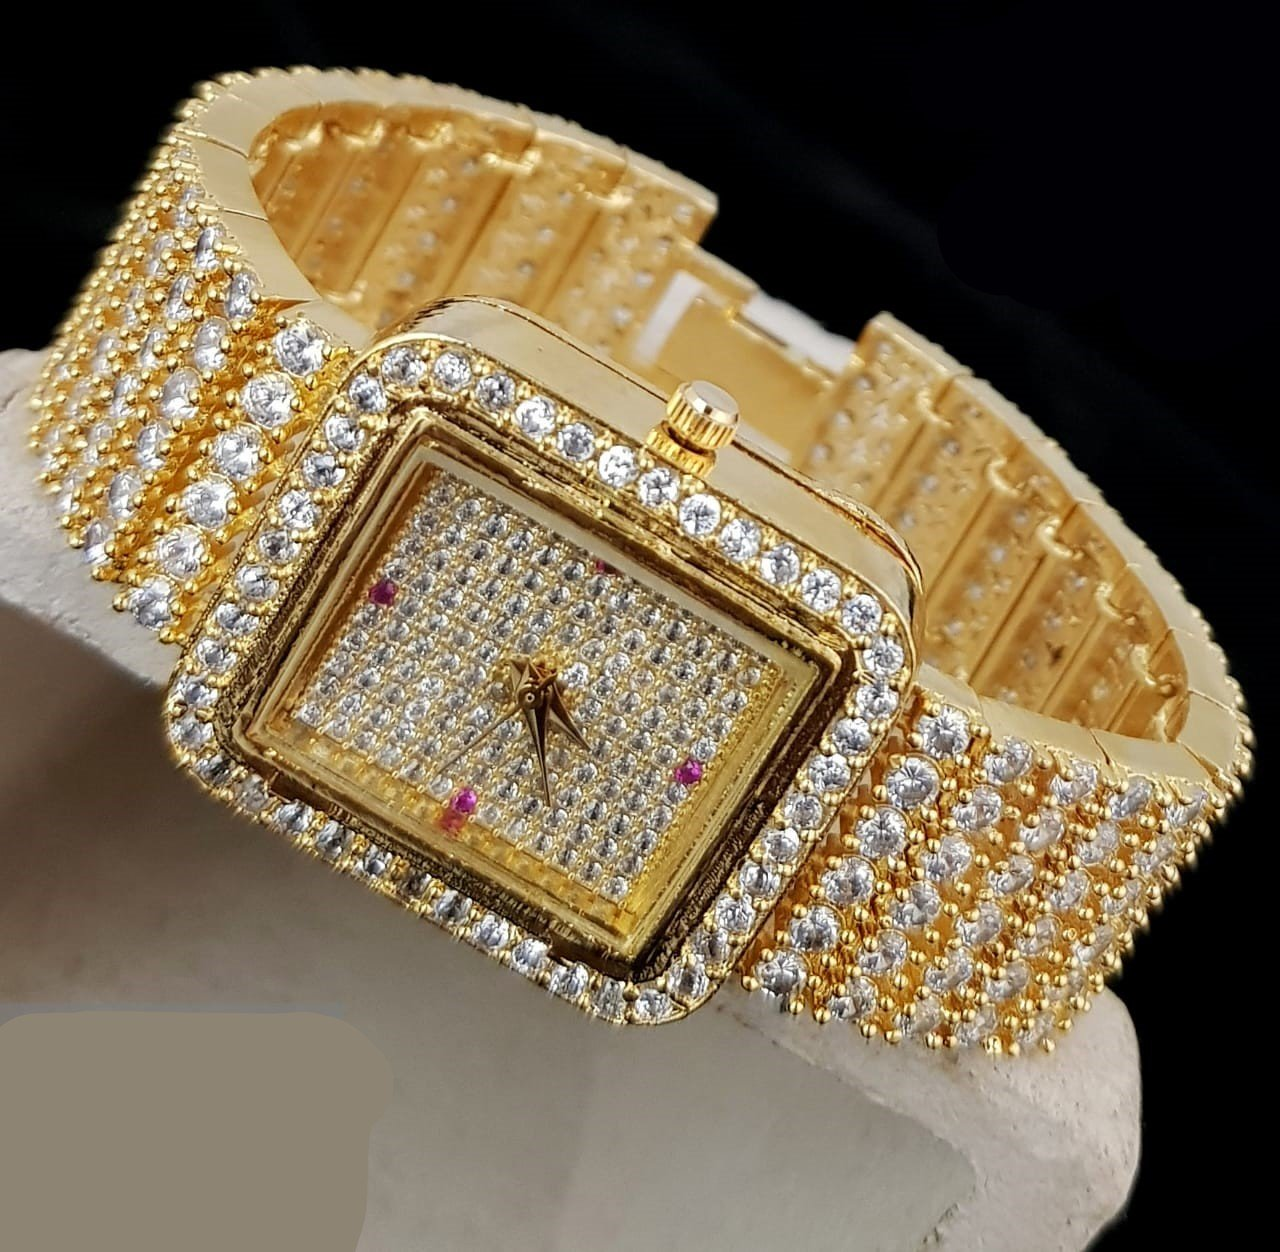 Fancy Wrist Watch With American Diamond Stone